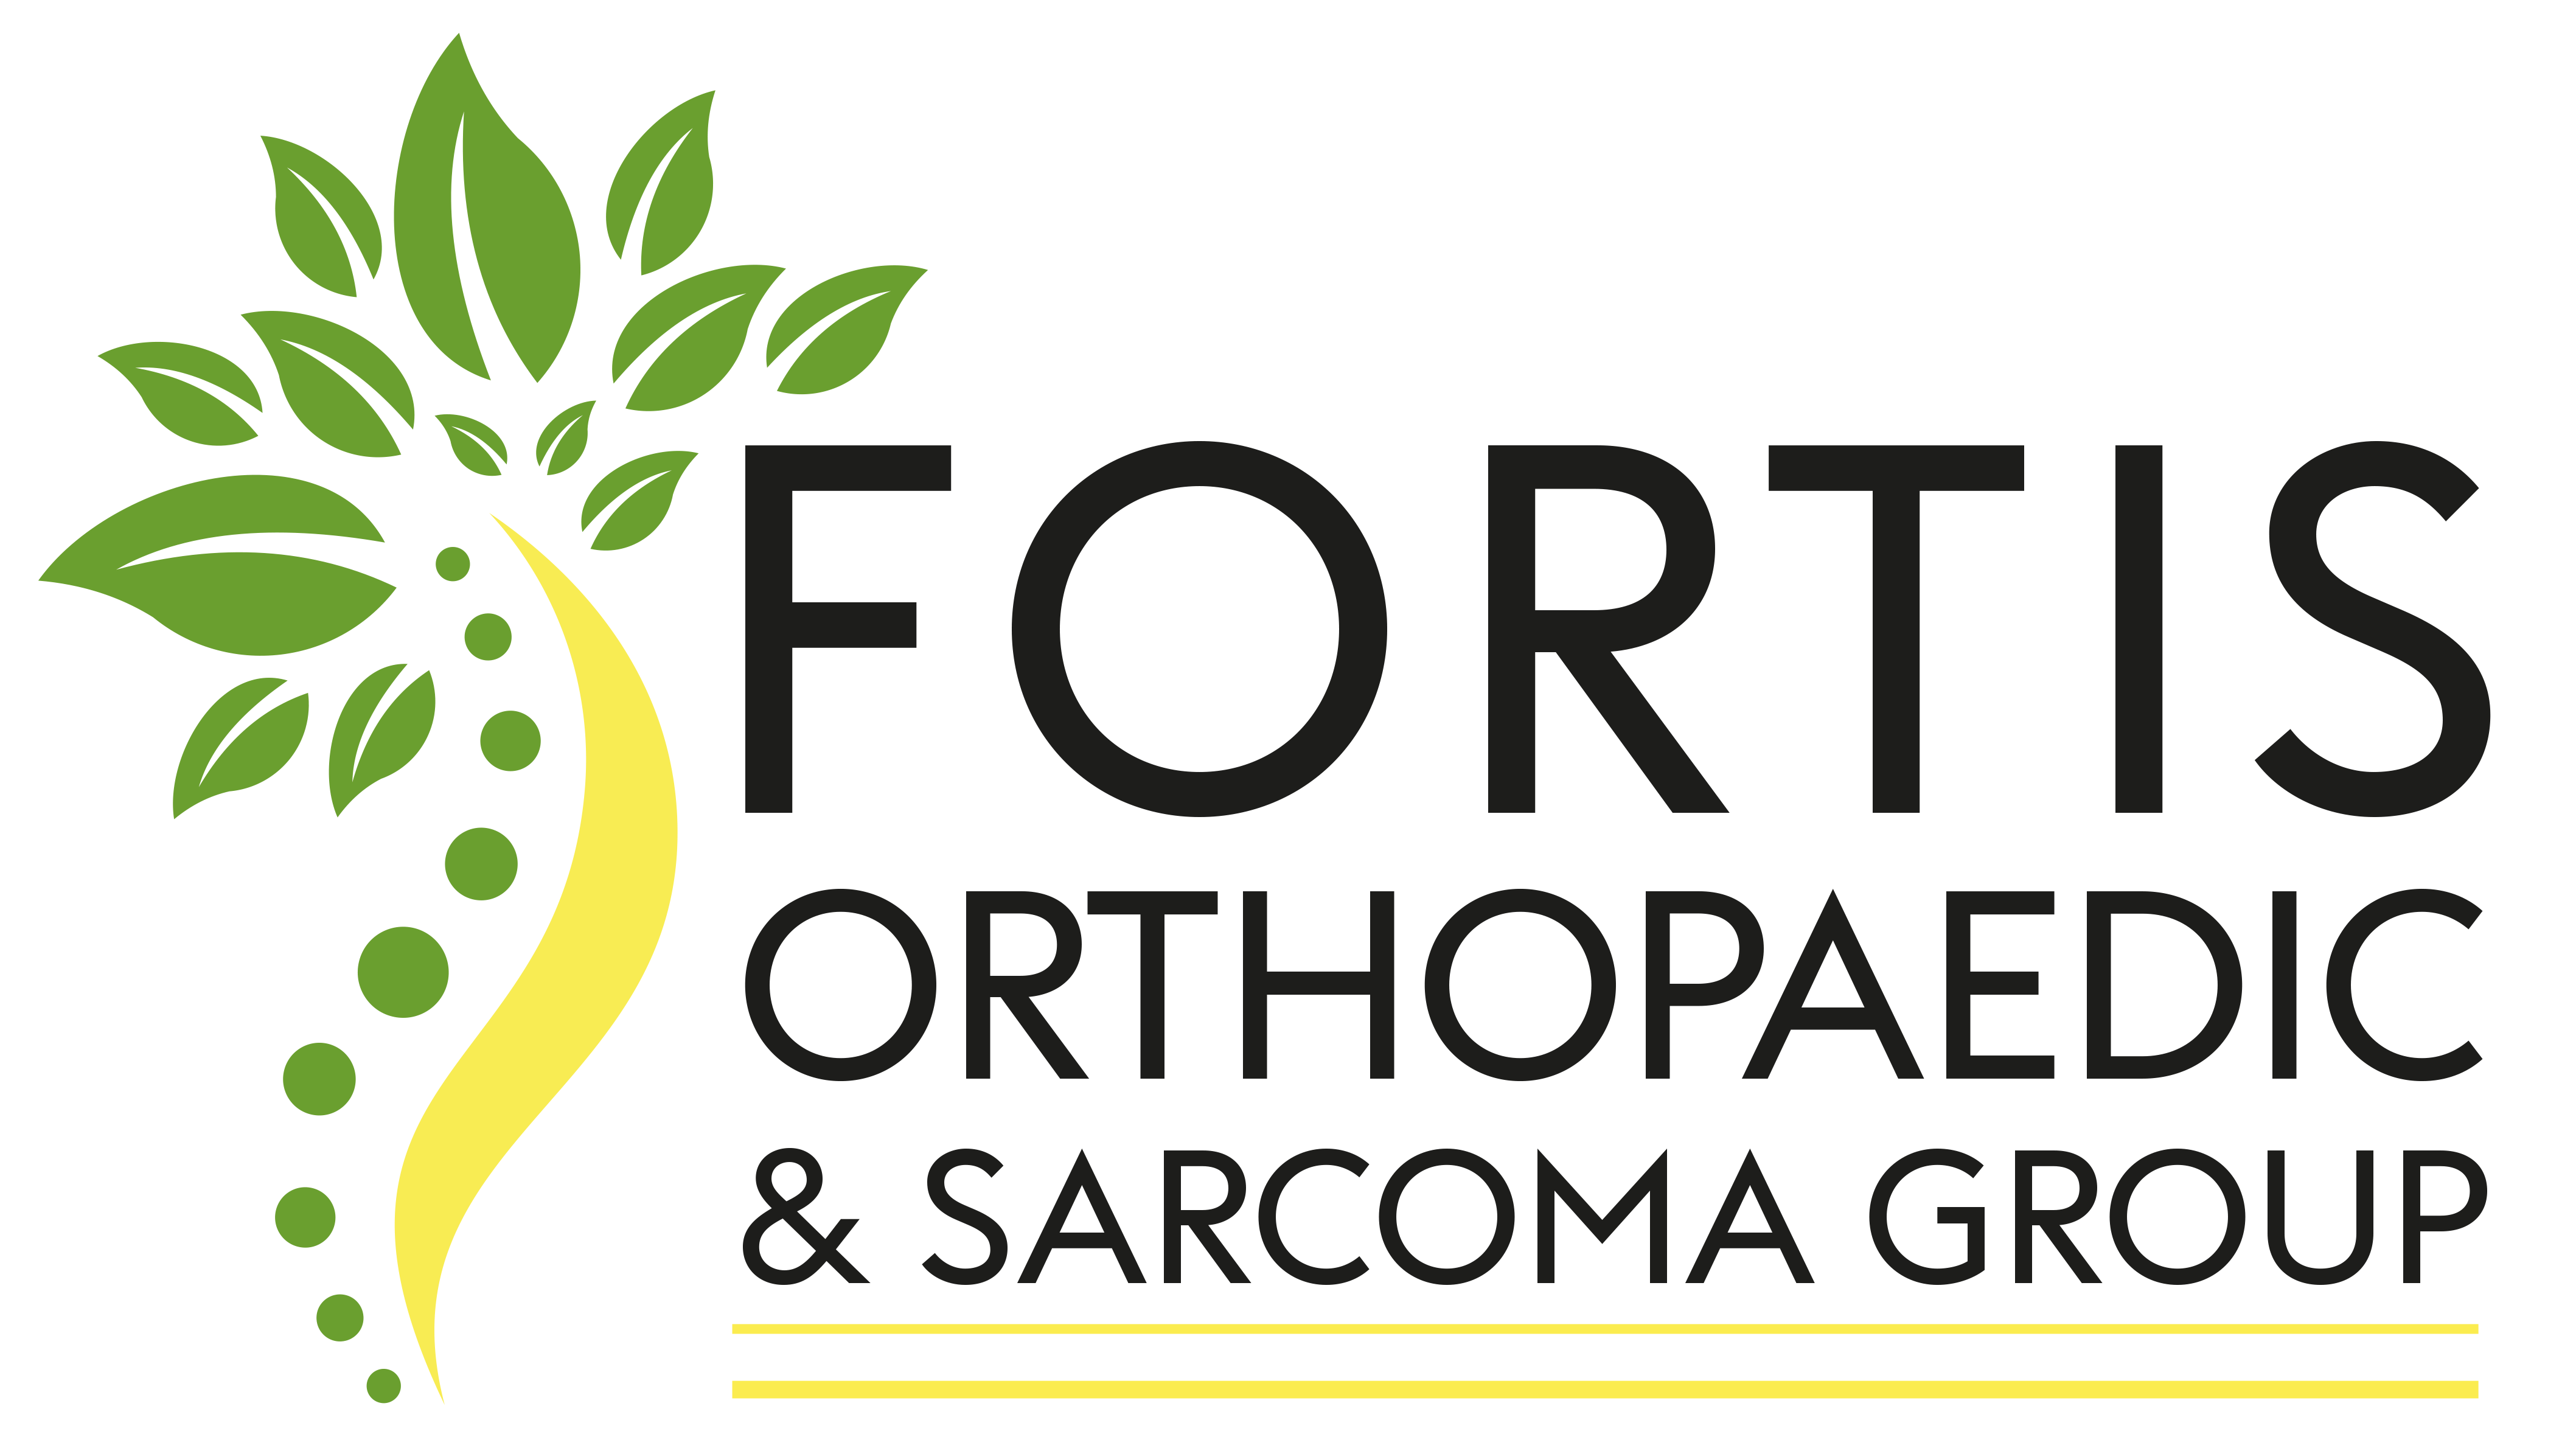 FORTIS ORTHOPAEDIC & SARCOMA GROUP